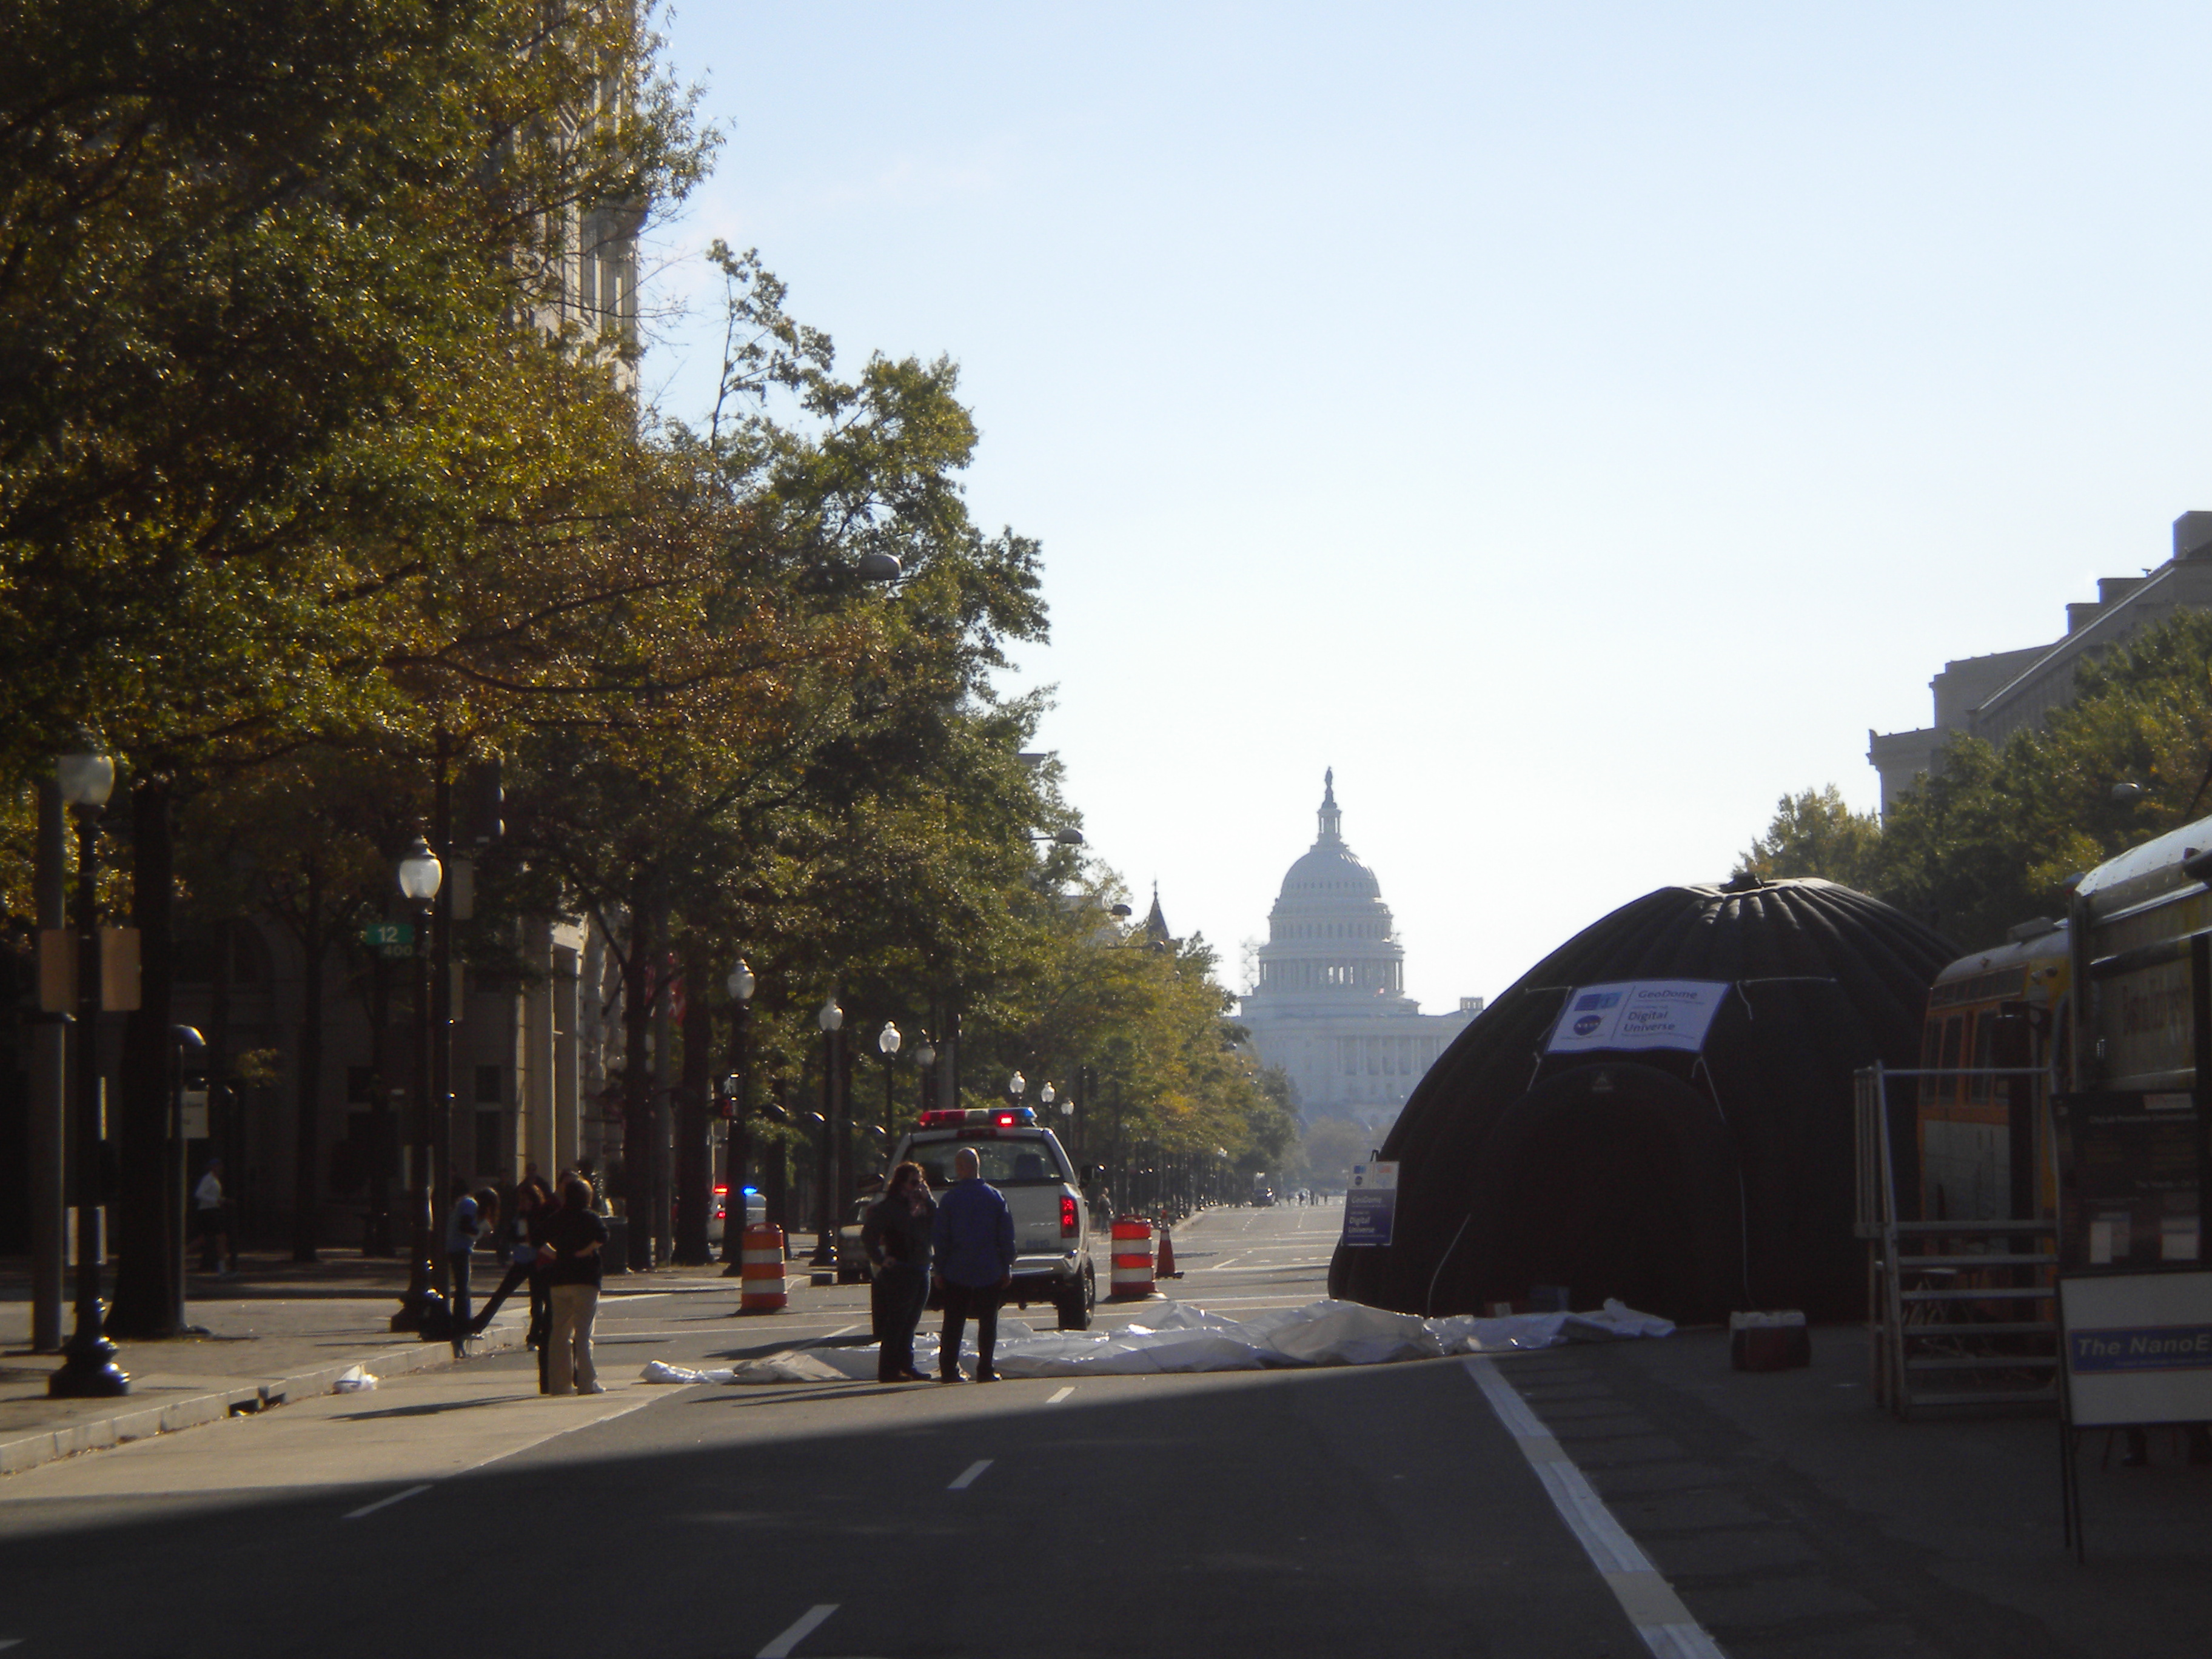 Looking down Pennsylvania Avenue - the Capital!